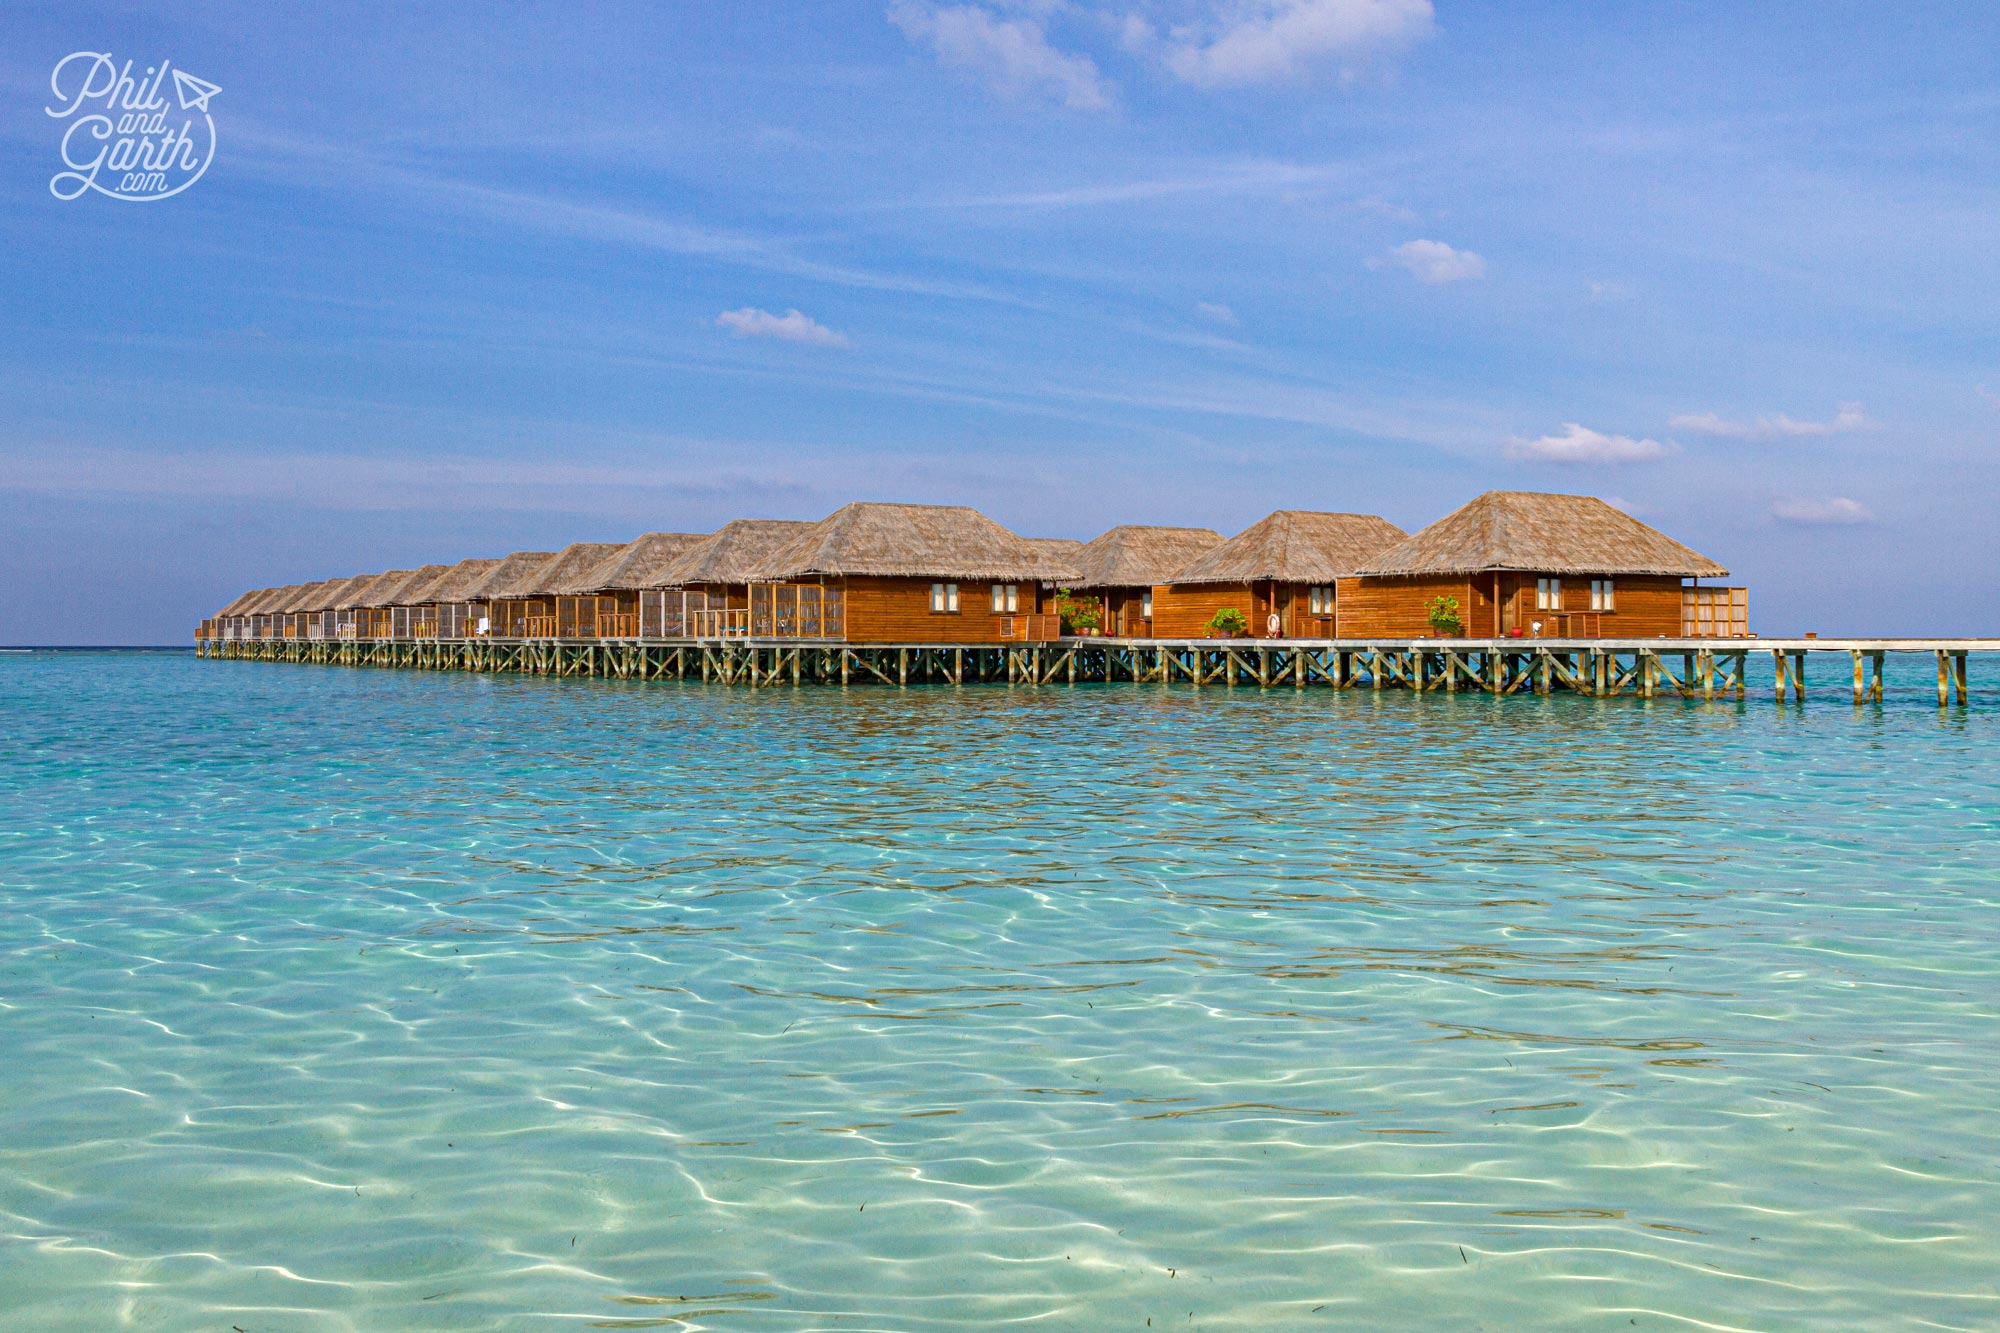 The other jacuzzi water villas located at the north of the island